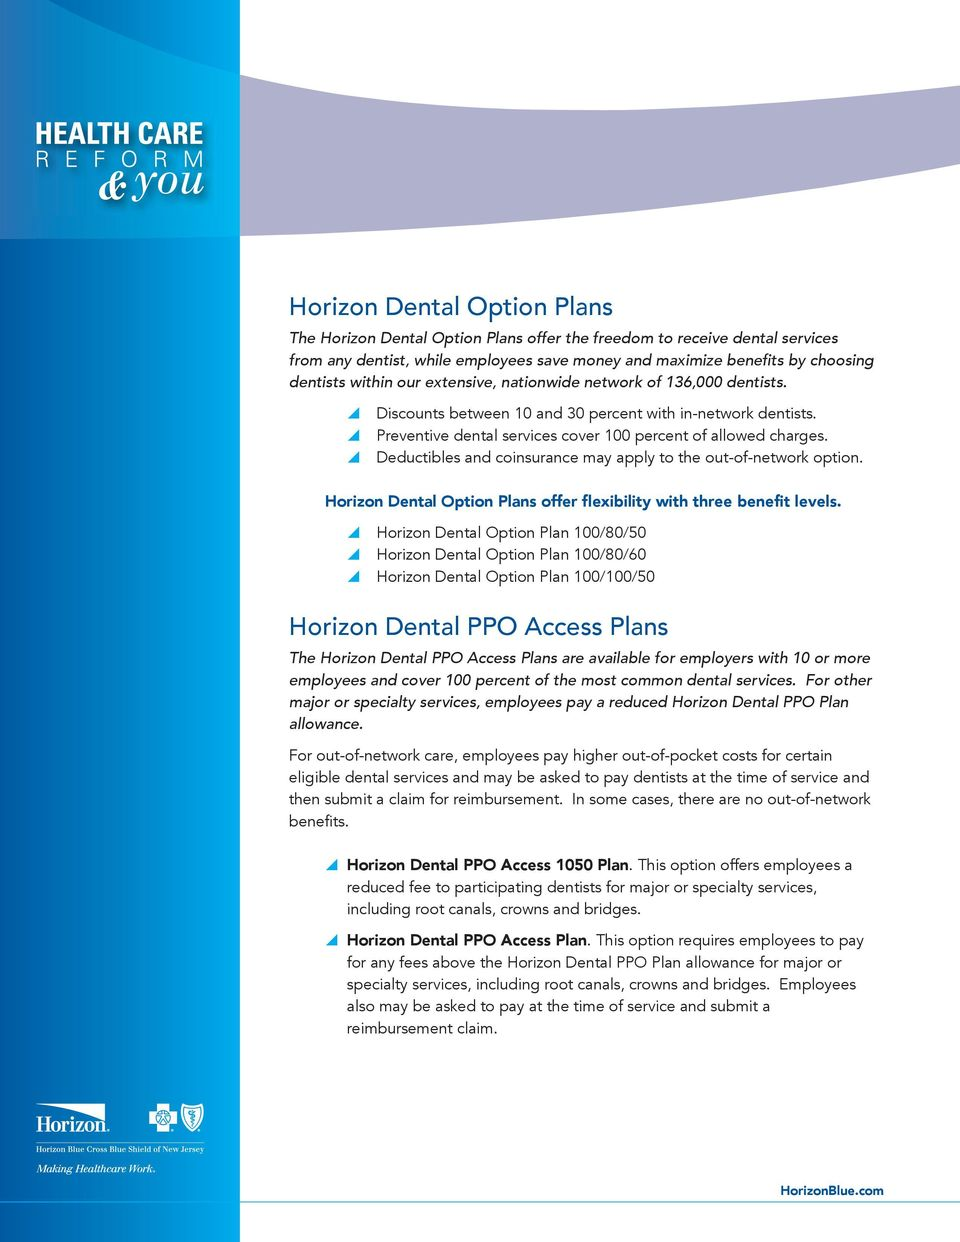 Deductibles and coinsurance may apply to the out-of-network option. Horizon Dental Option Plans offer flexibility with three benefit levels.